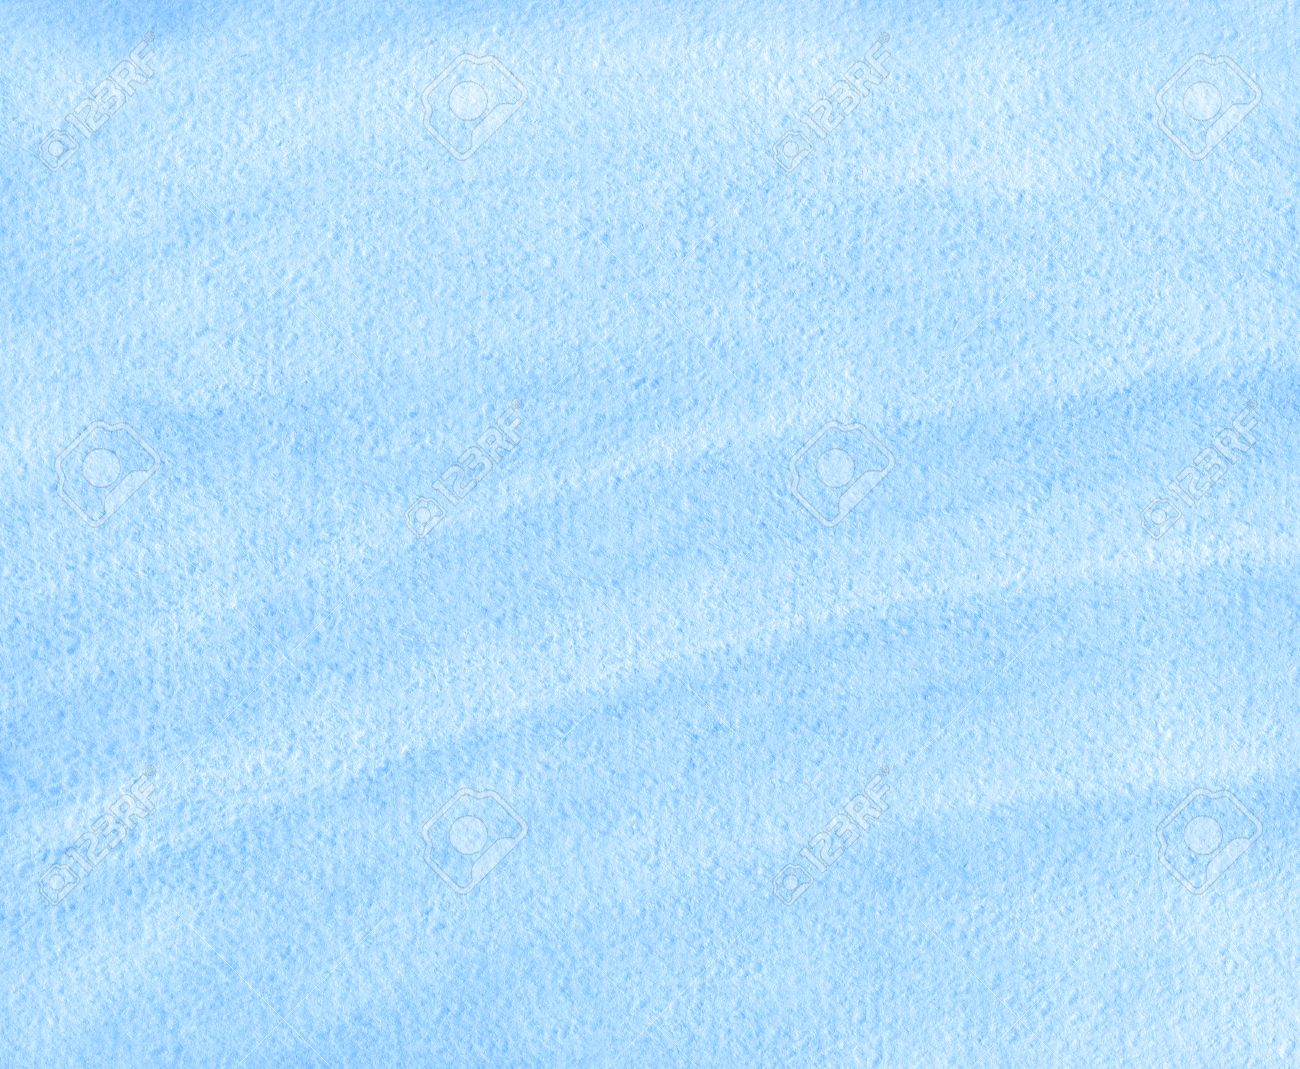 Abstract blue watercolor paper texture or background